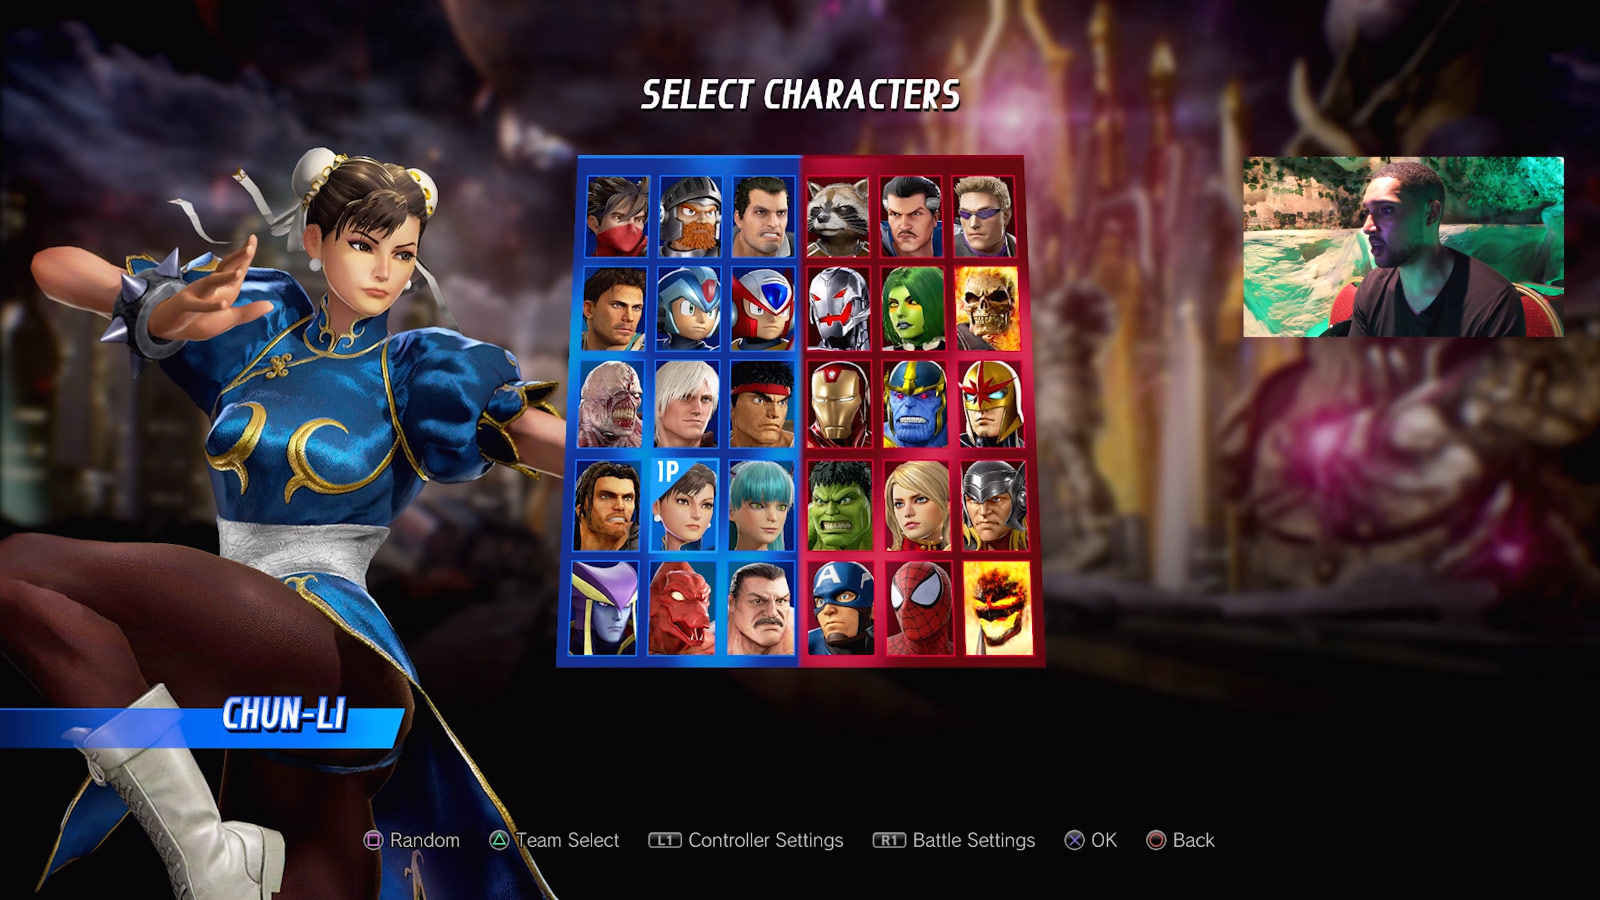 Marvel vs. Capcom: Infinite character select screen and menus 4 out of 6 image gallery